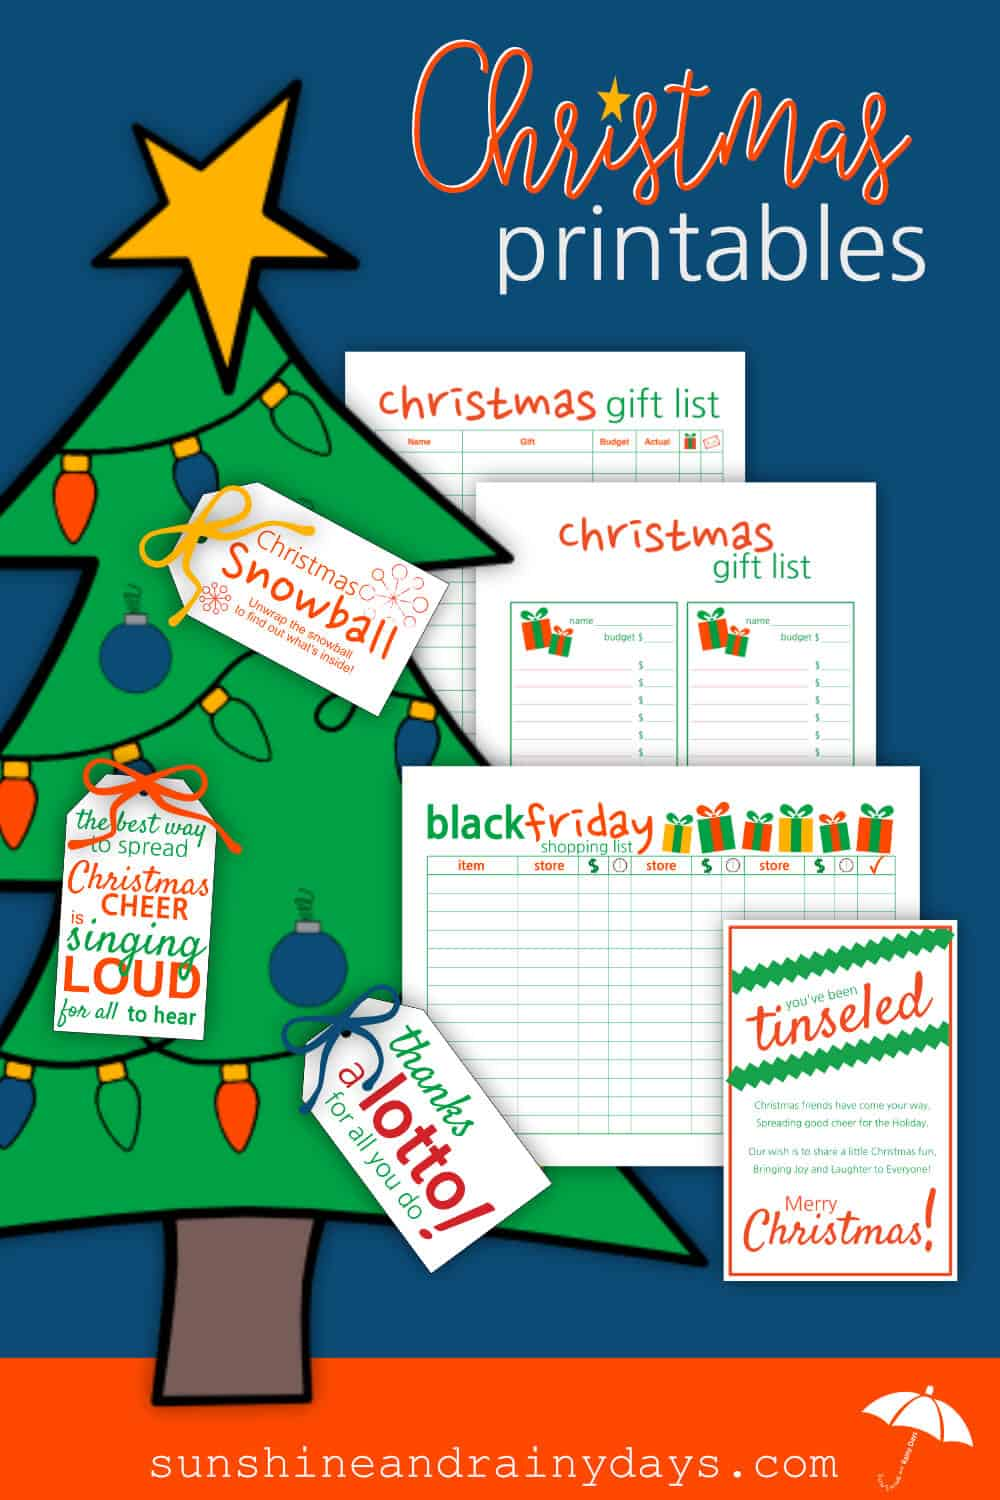 Christmas Printables are here to act as your personal assistant to relieve your mind of all the to do's so you can enjoy driving around local neighborhoods to check out the lights!